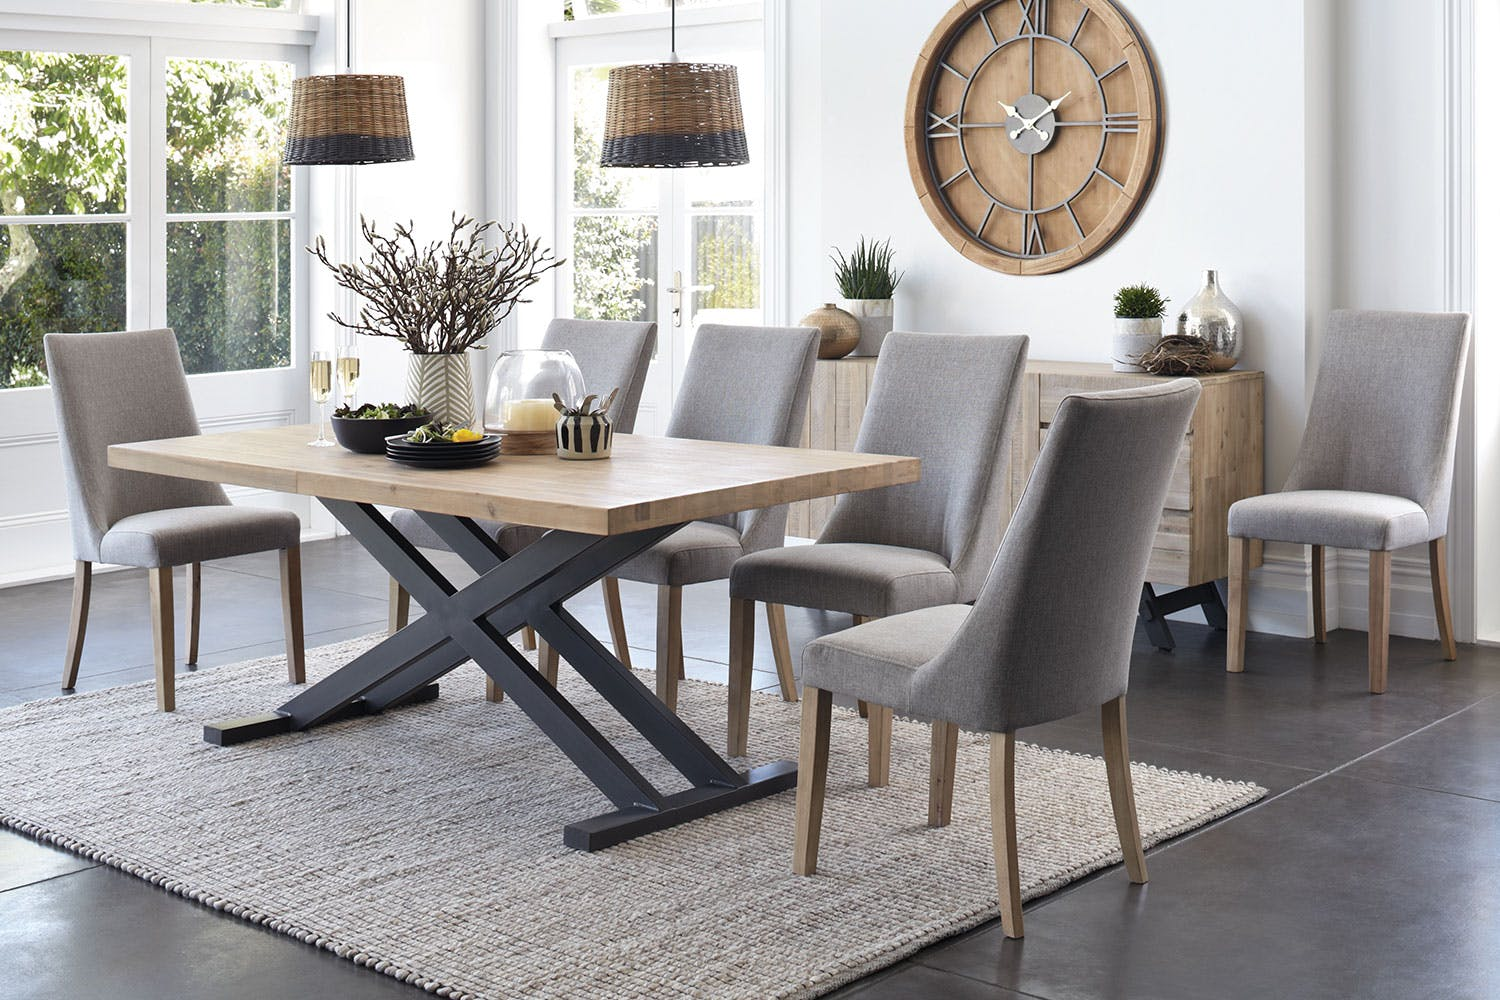 Bari dining table by john young furniture harvey norman for Dining room tables harvey norman